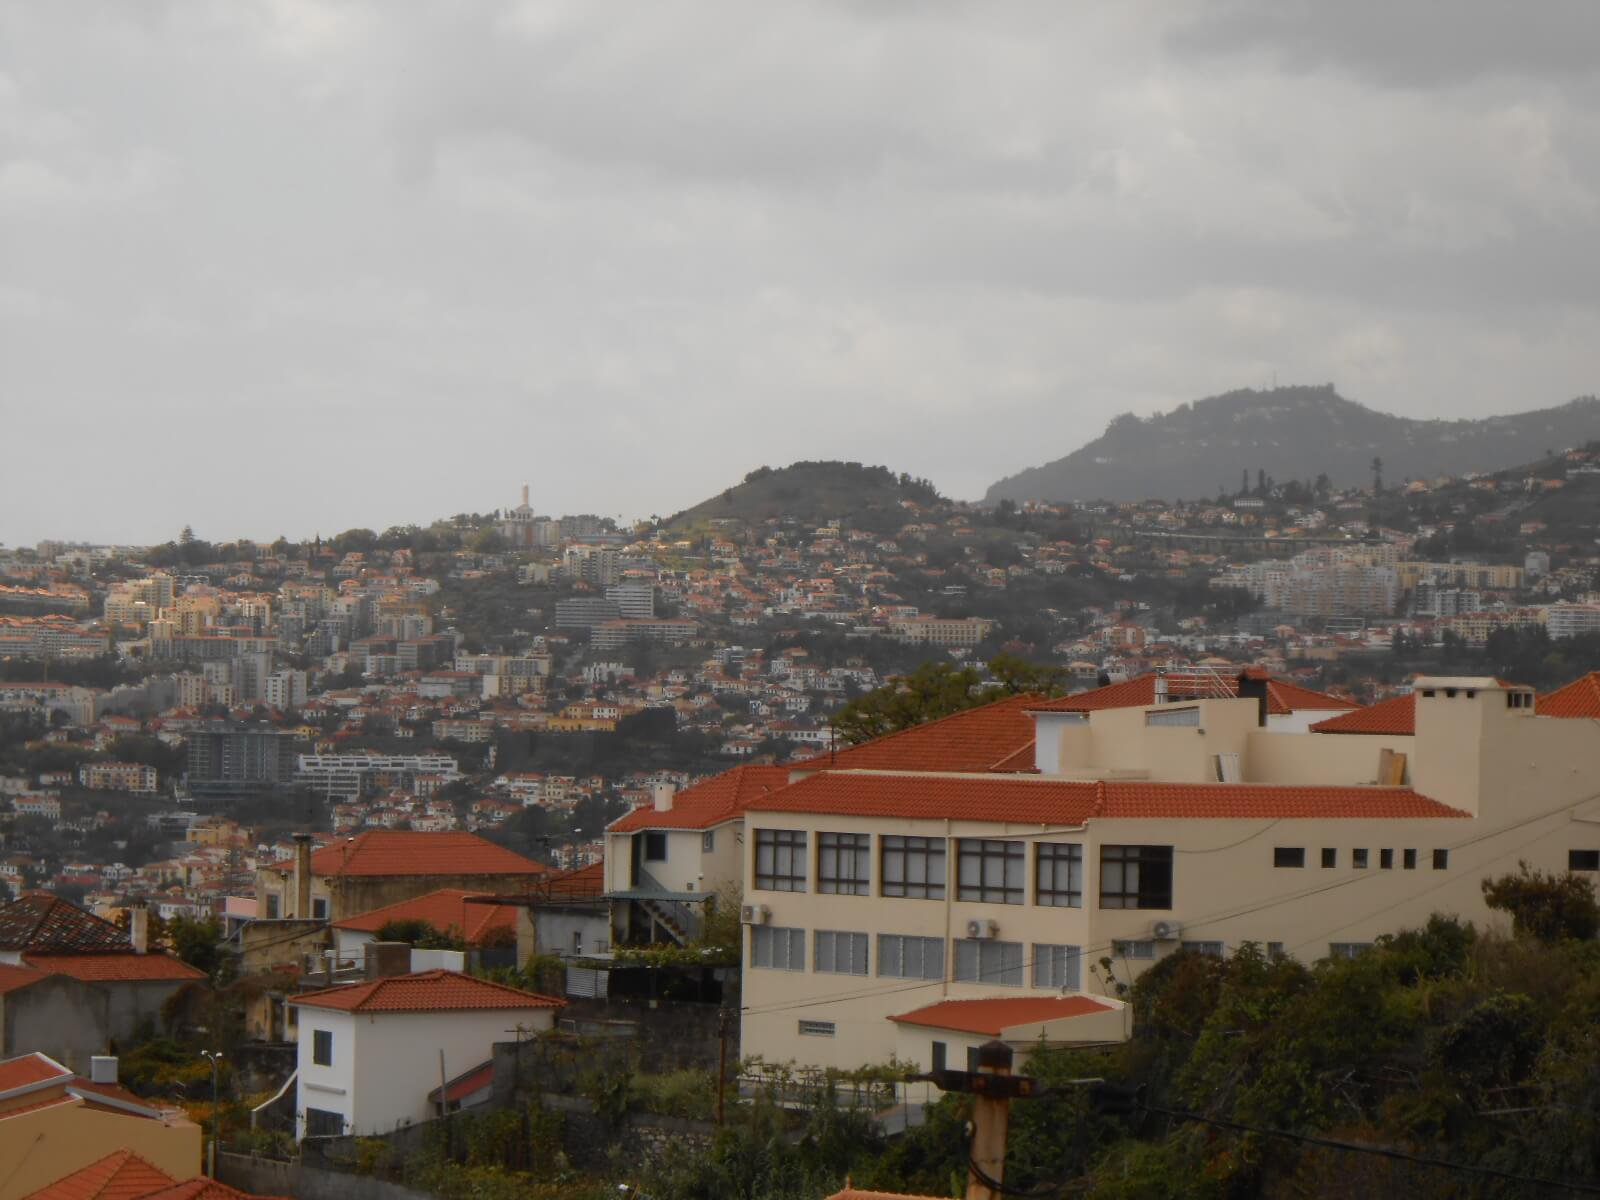 Modern T3 House of 160 m2 in Perfect Condition, with Terraces, Fantastic View on Funchal and Funchal Cruises Harbour